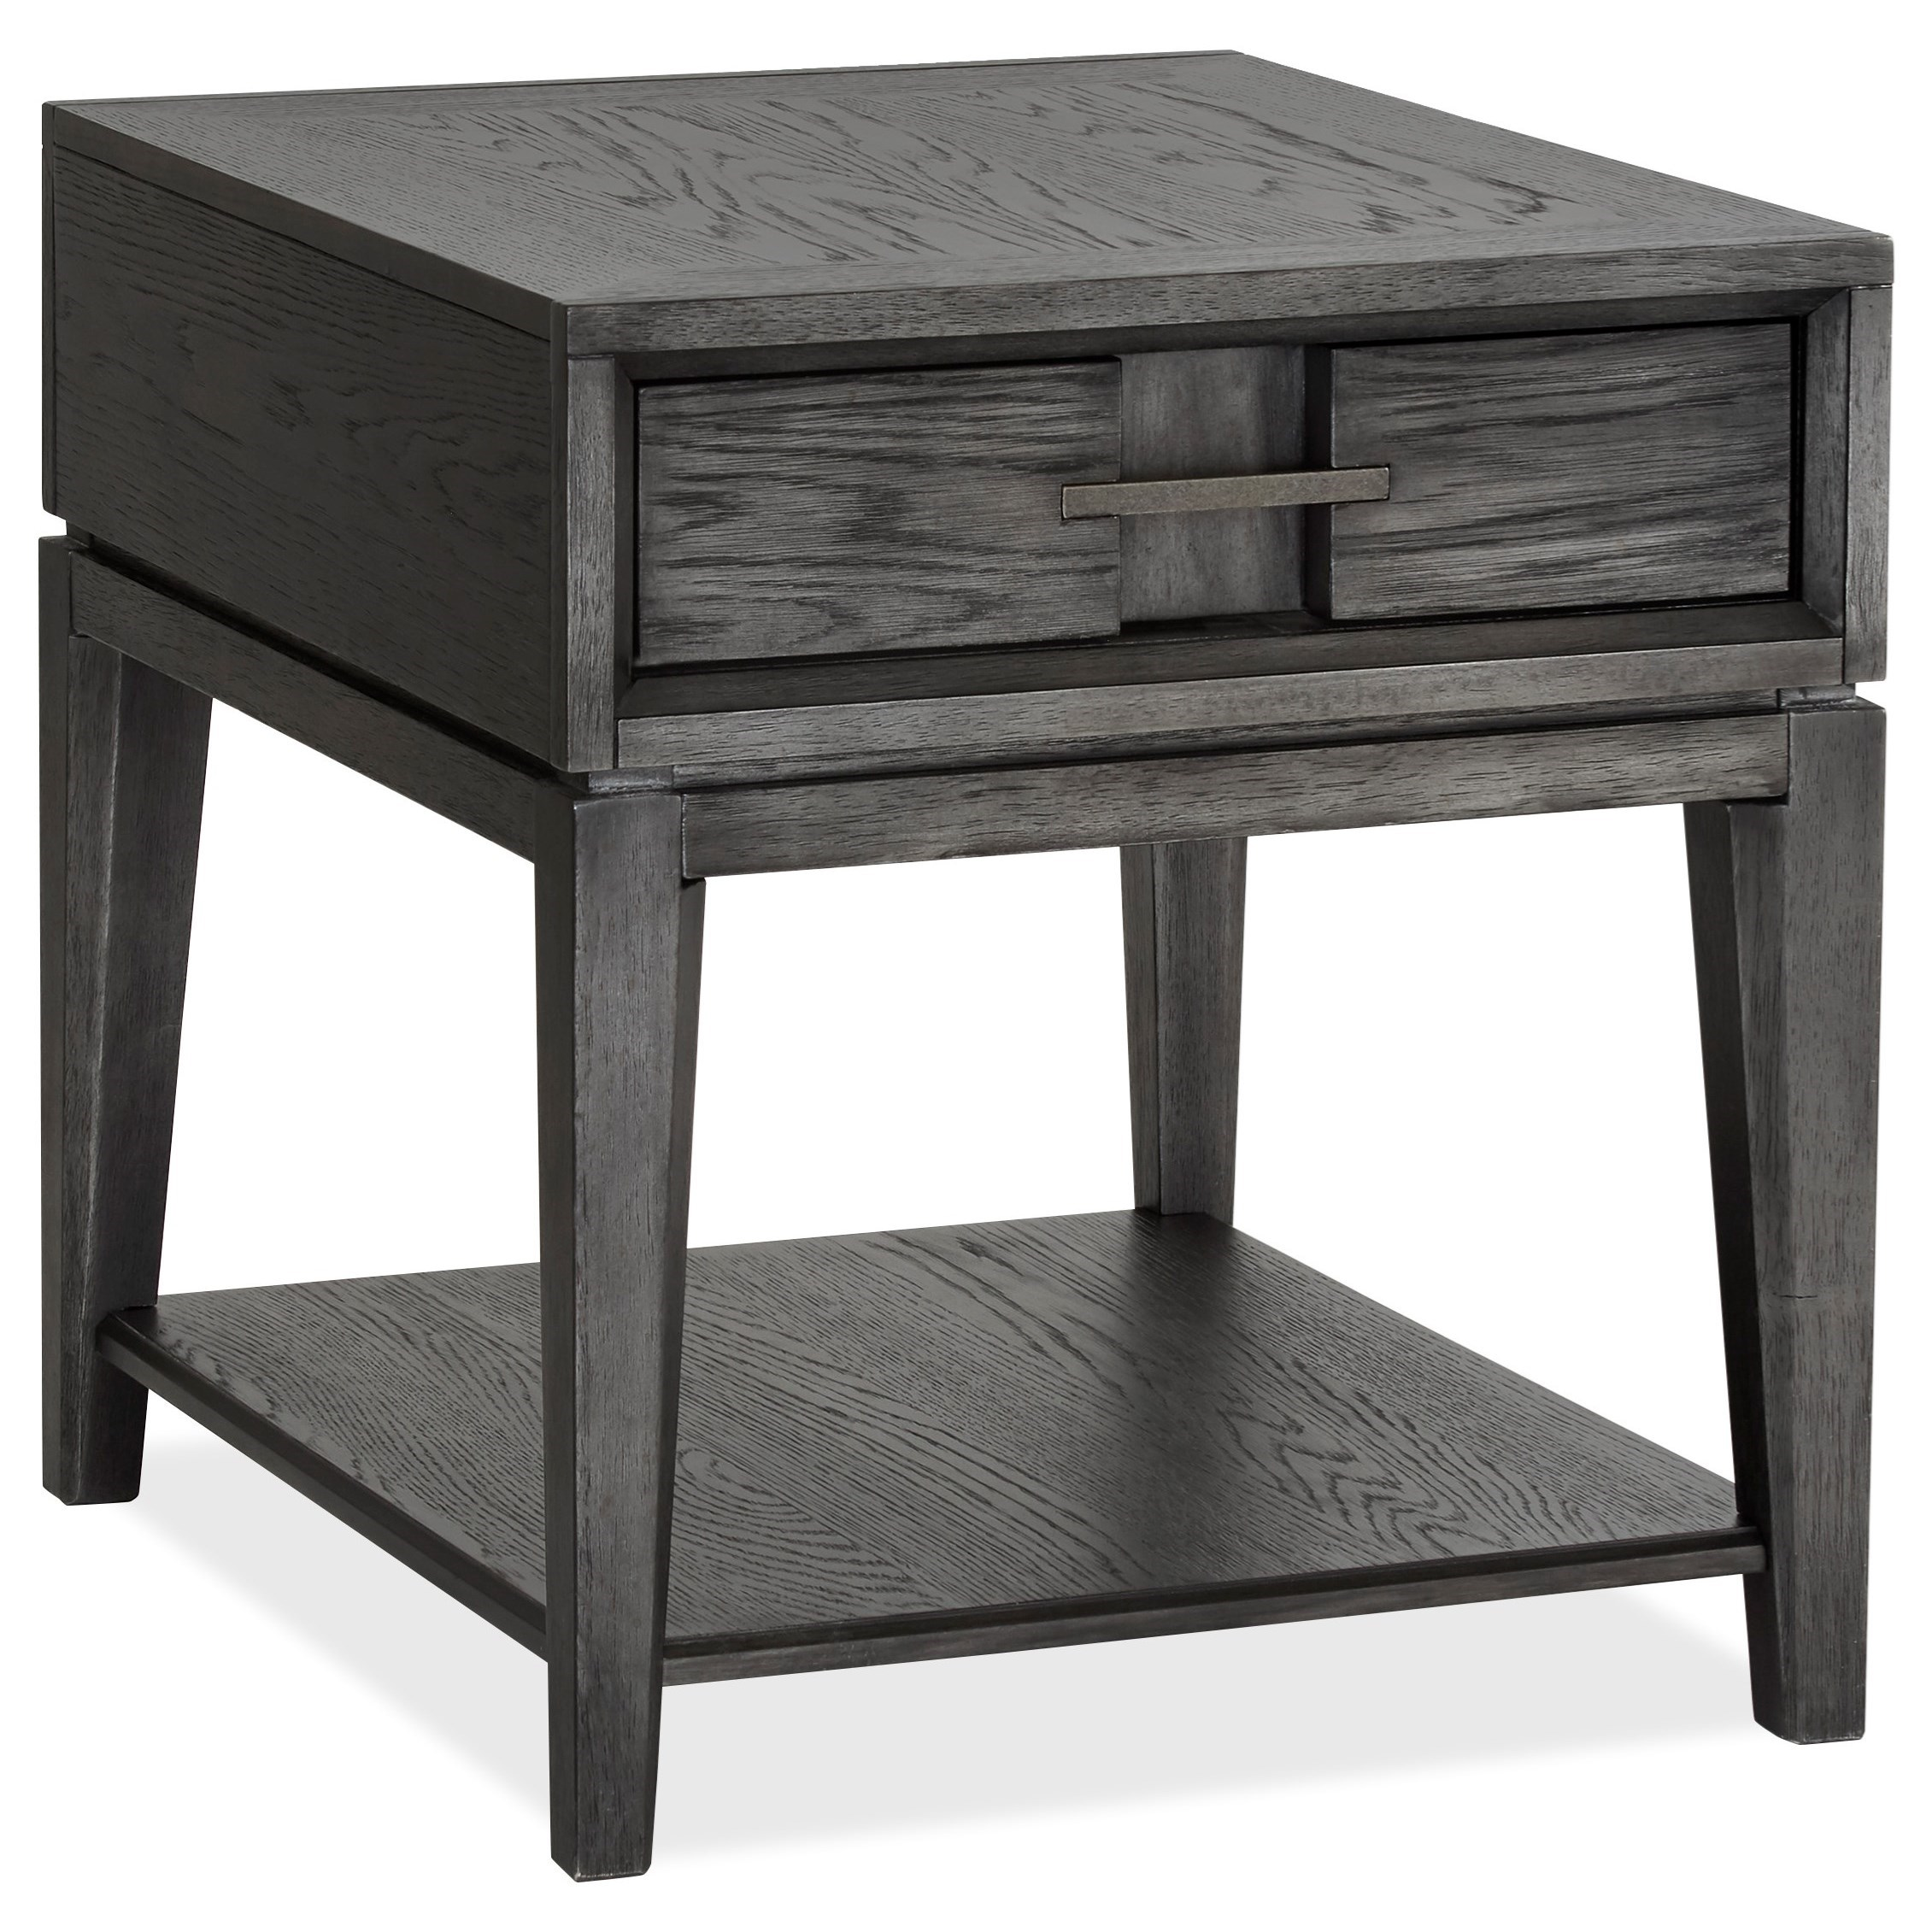 Proximity Heights Rectangular End Table by Magnussen Home at HomeWorld Furniture